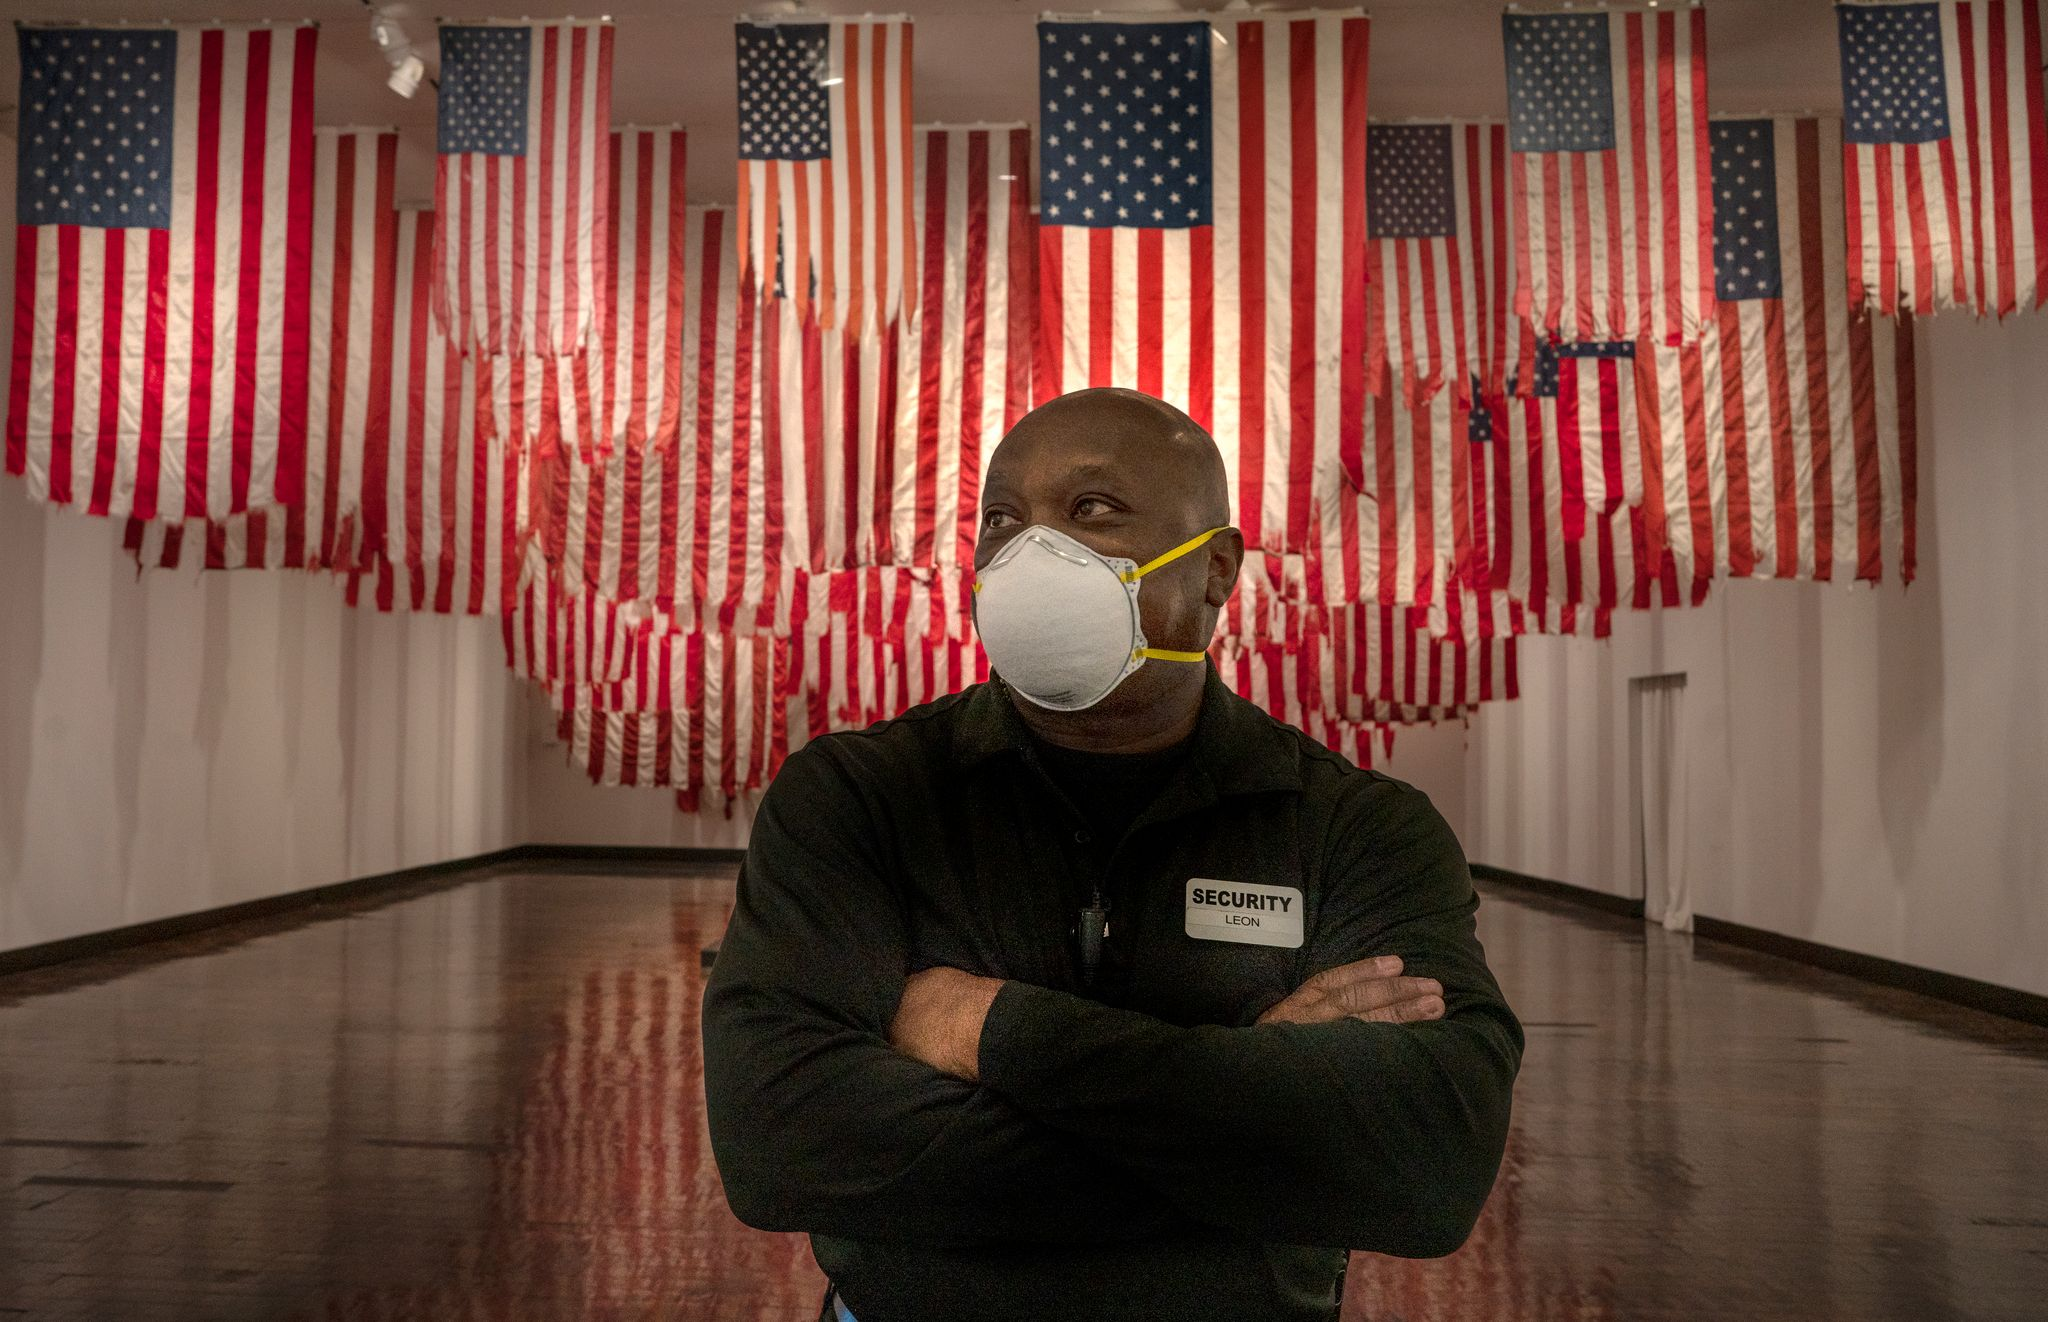 """In July 2020, a masked security guard stands watch inside the Frist Museum in the series, """"The New Normal."""" (Photo: John Partipilo)"""